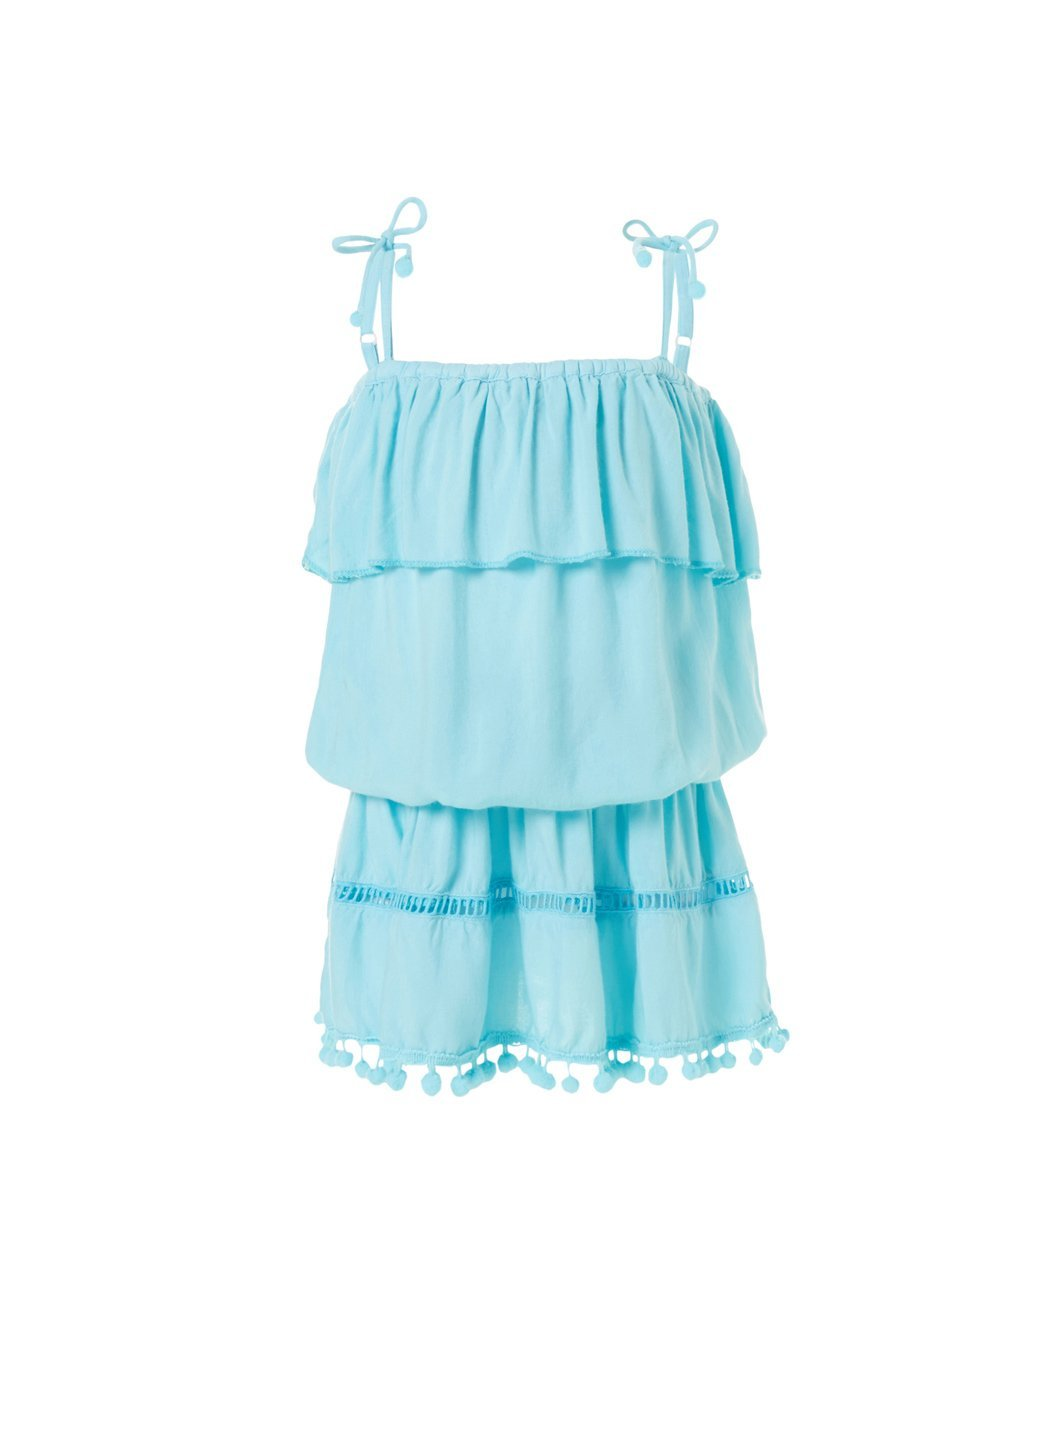 baby joy sky beach dress 2019